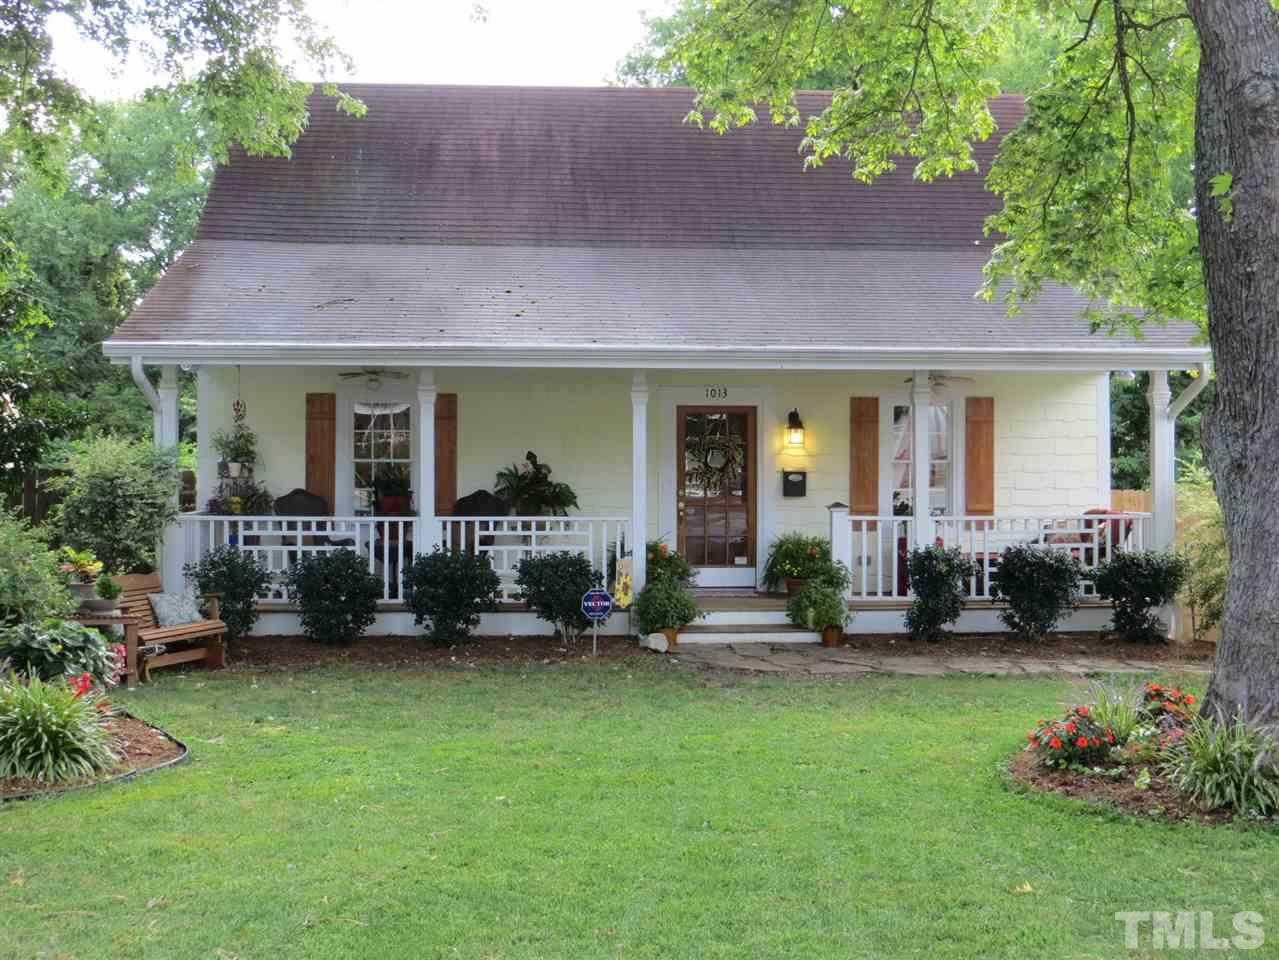 $375,000 - 4Br/2Ba -  for Sale in Not In A Subdivision, Raleigh